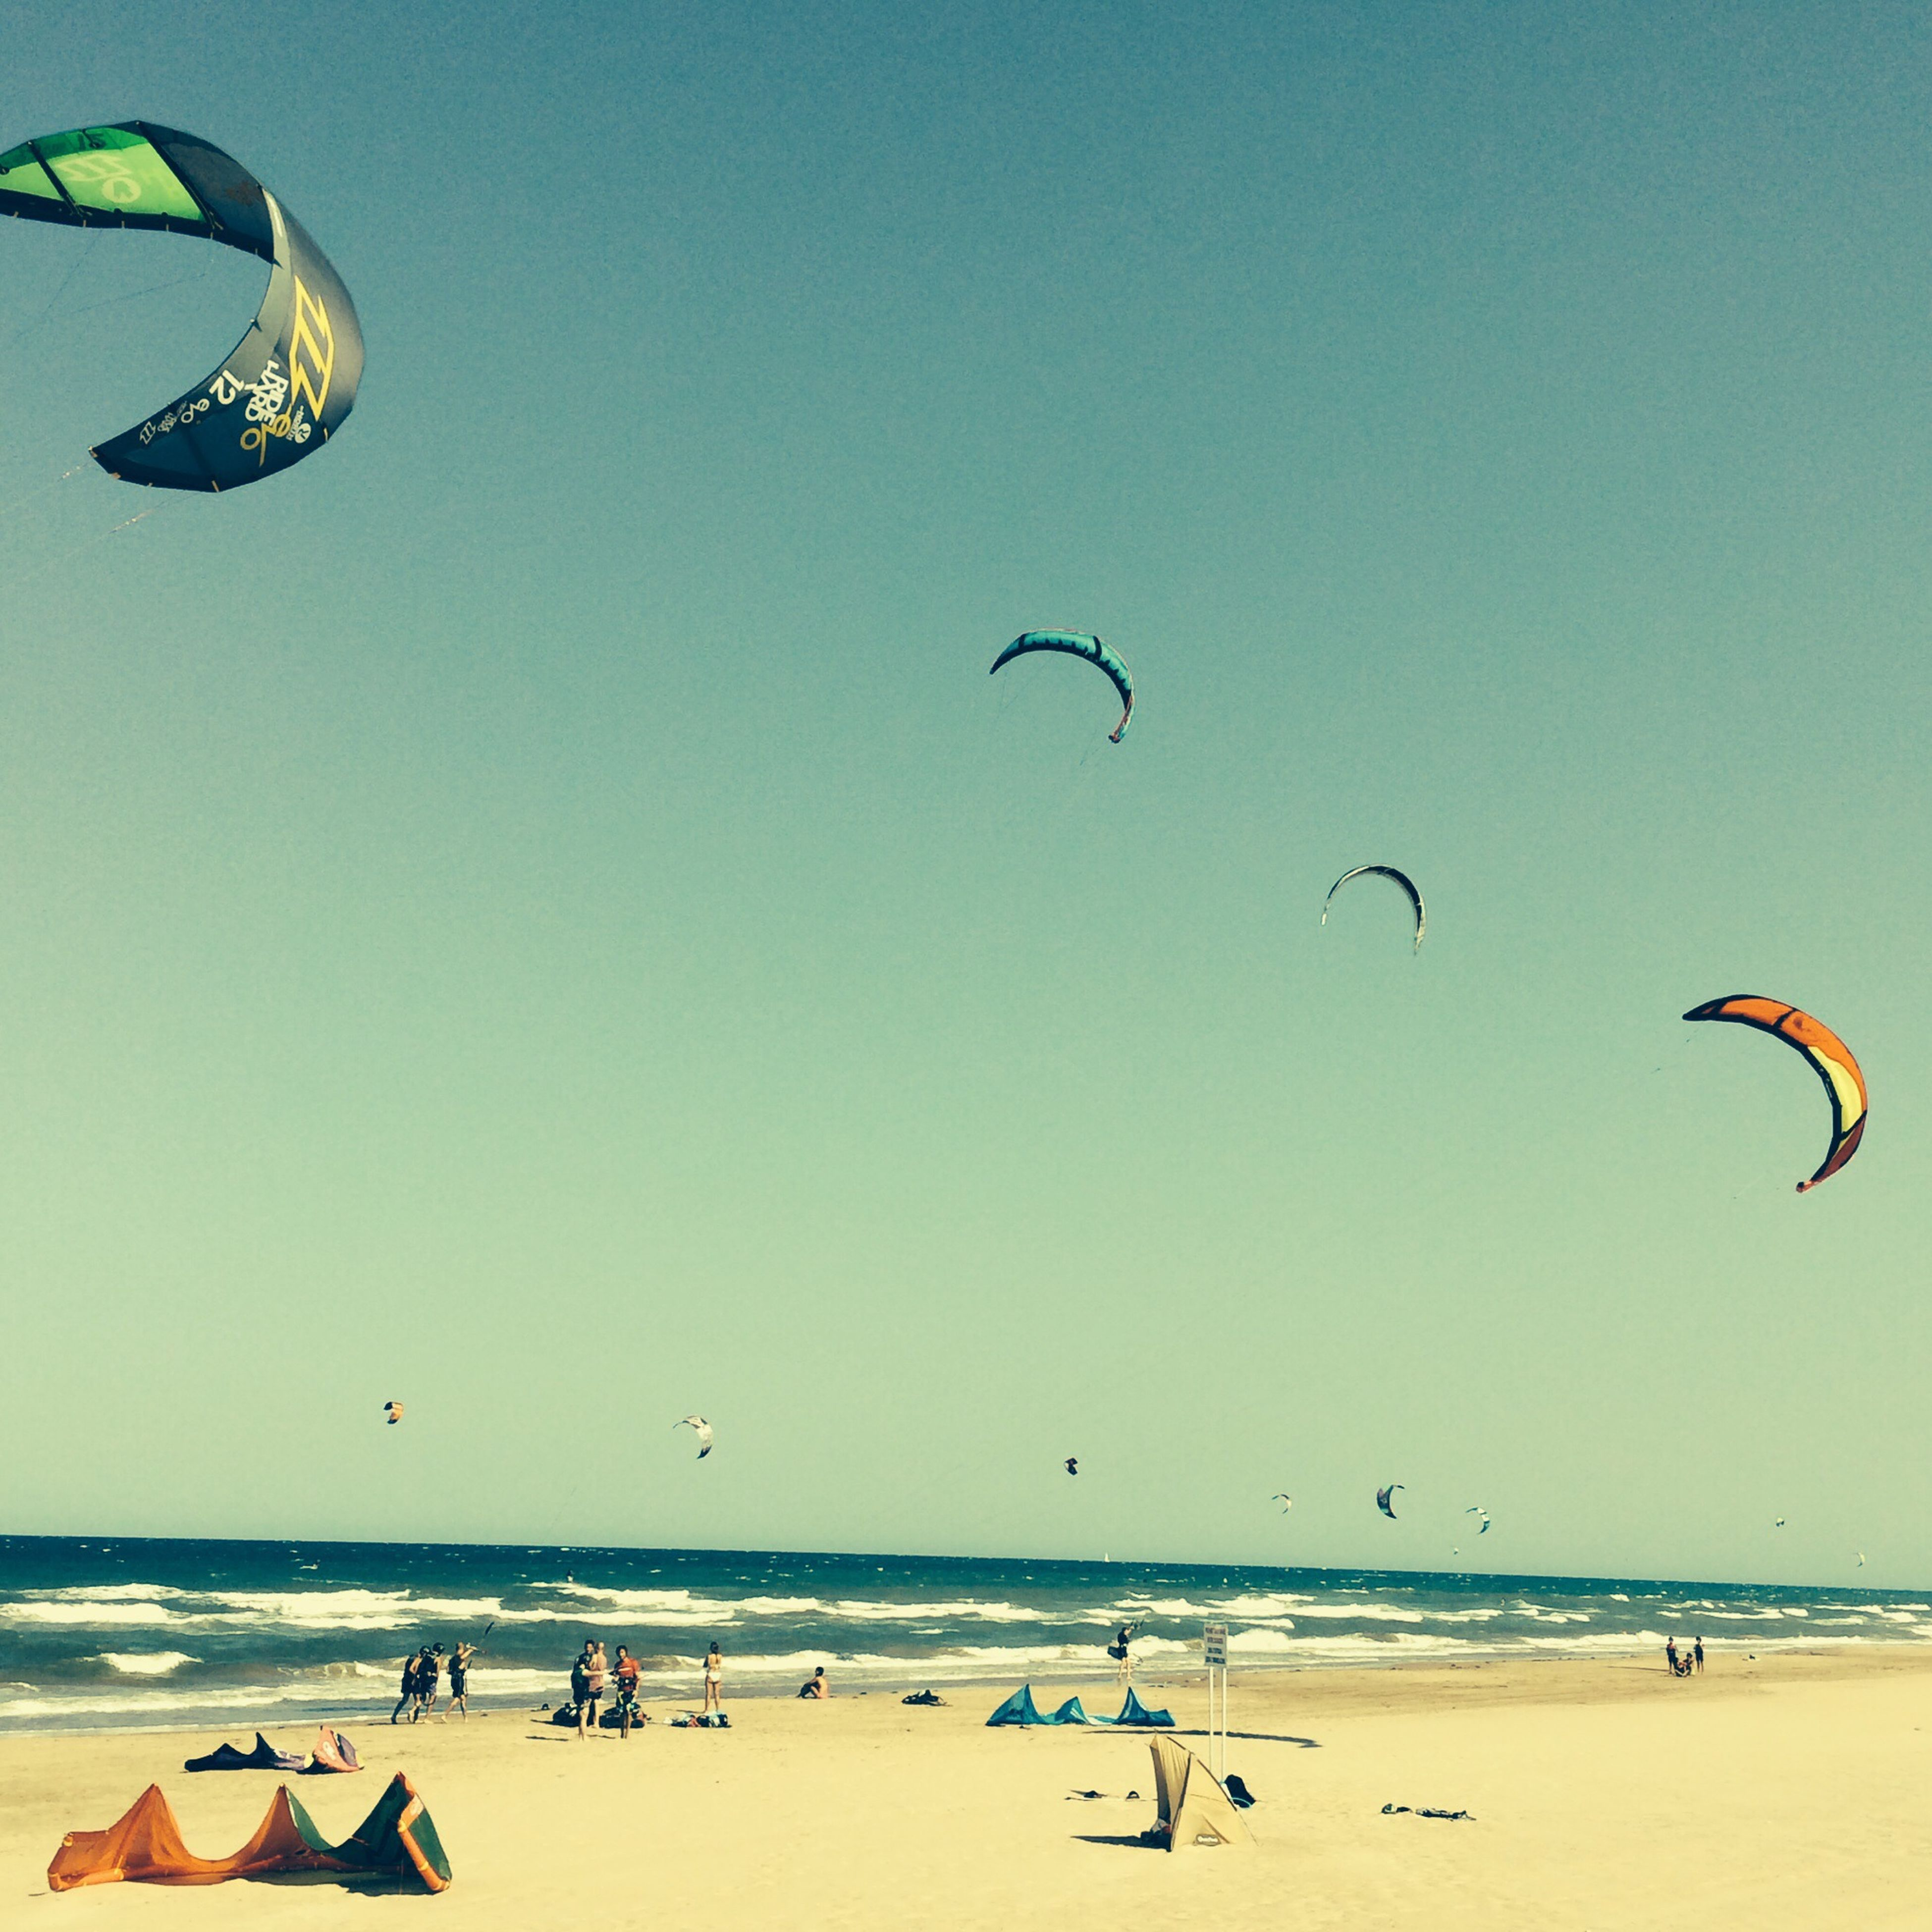 beach, sea, flying, sand, horizon over water, mid-air, vacations, leisure activity, parachute, water, shore, clear sky, enjoyment, large group of people, fun, blue, copy space, lifestyles, scenics